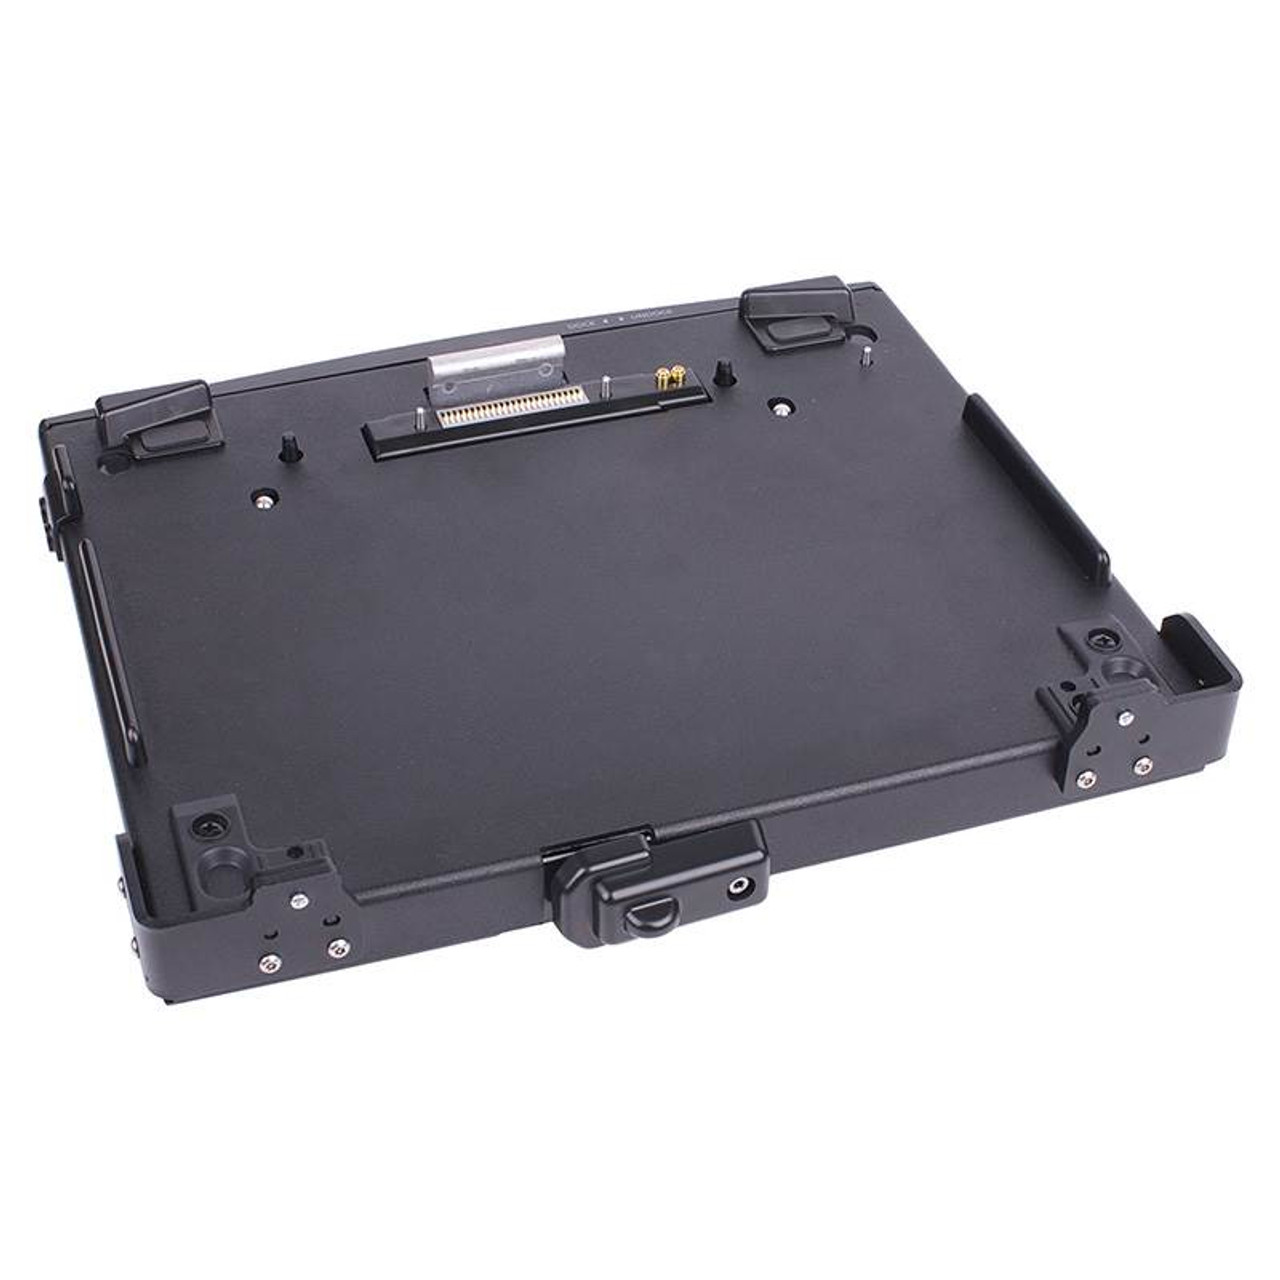 Image for Panasonic Vehicle Docking Cradle for CF-20 CX Computer Superstore